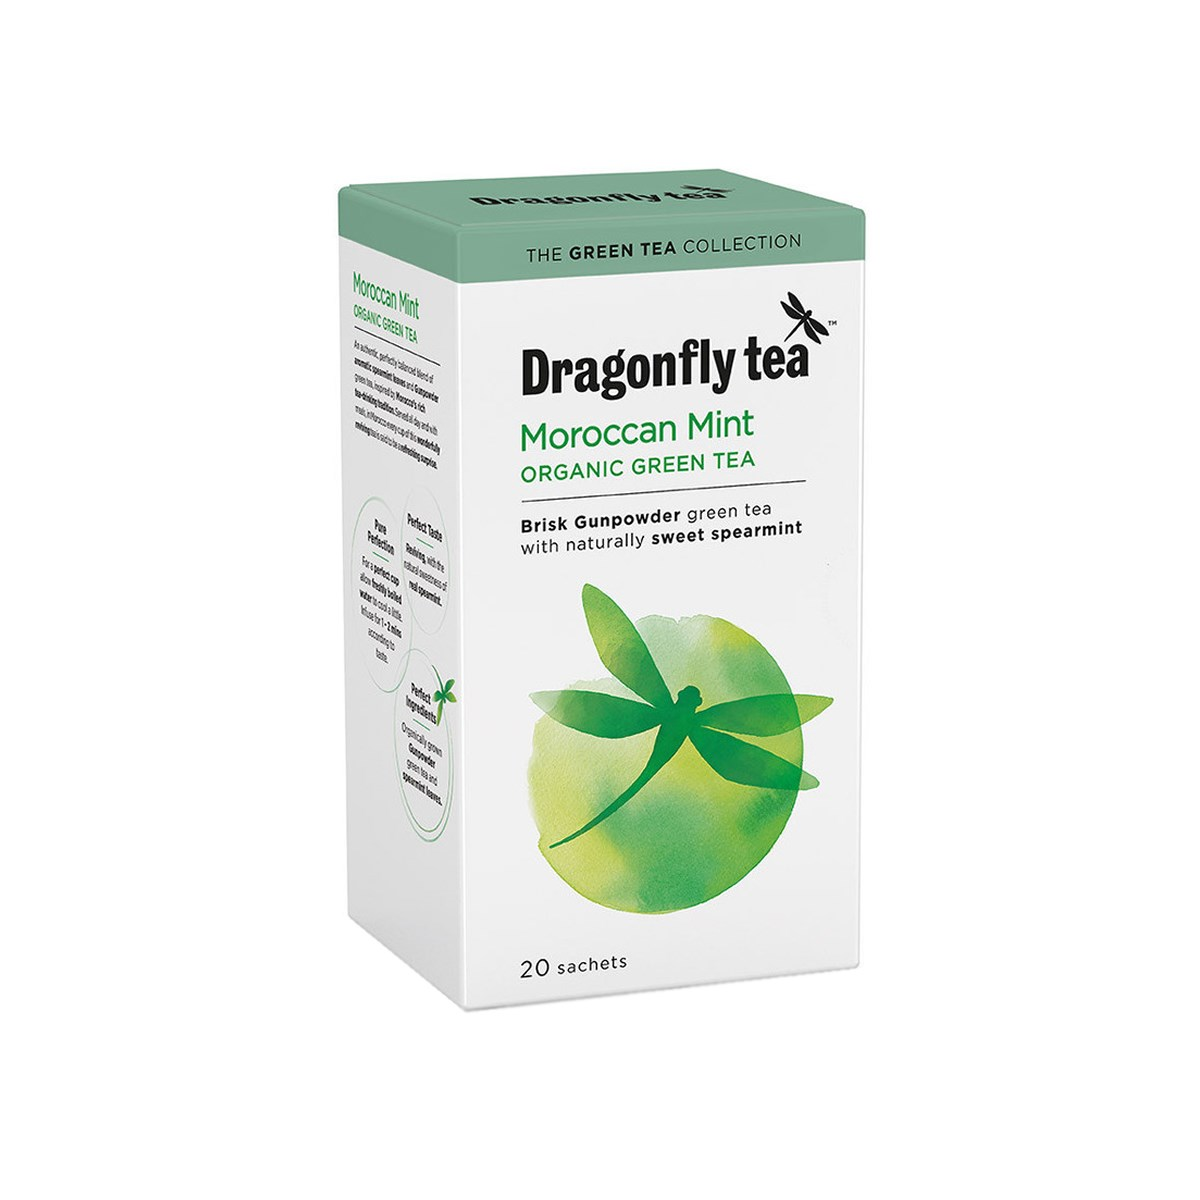 Dragonfly Organic Swirling White Mist Tea